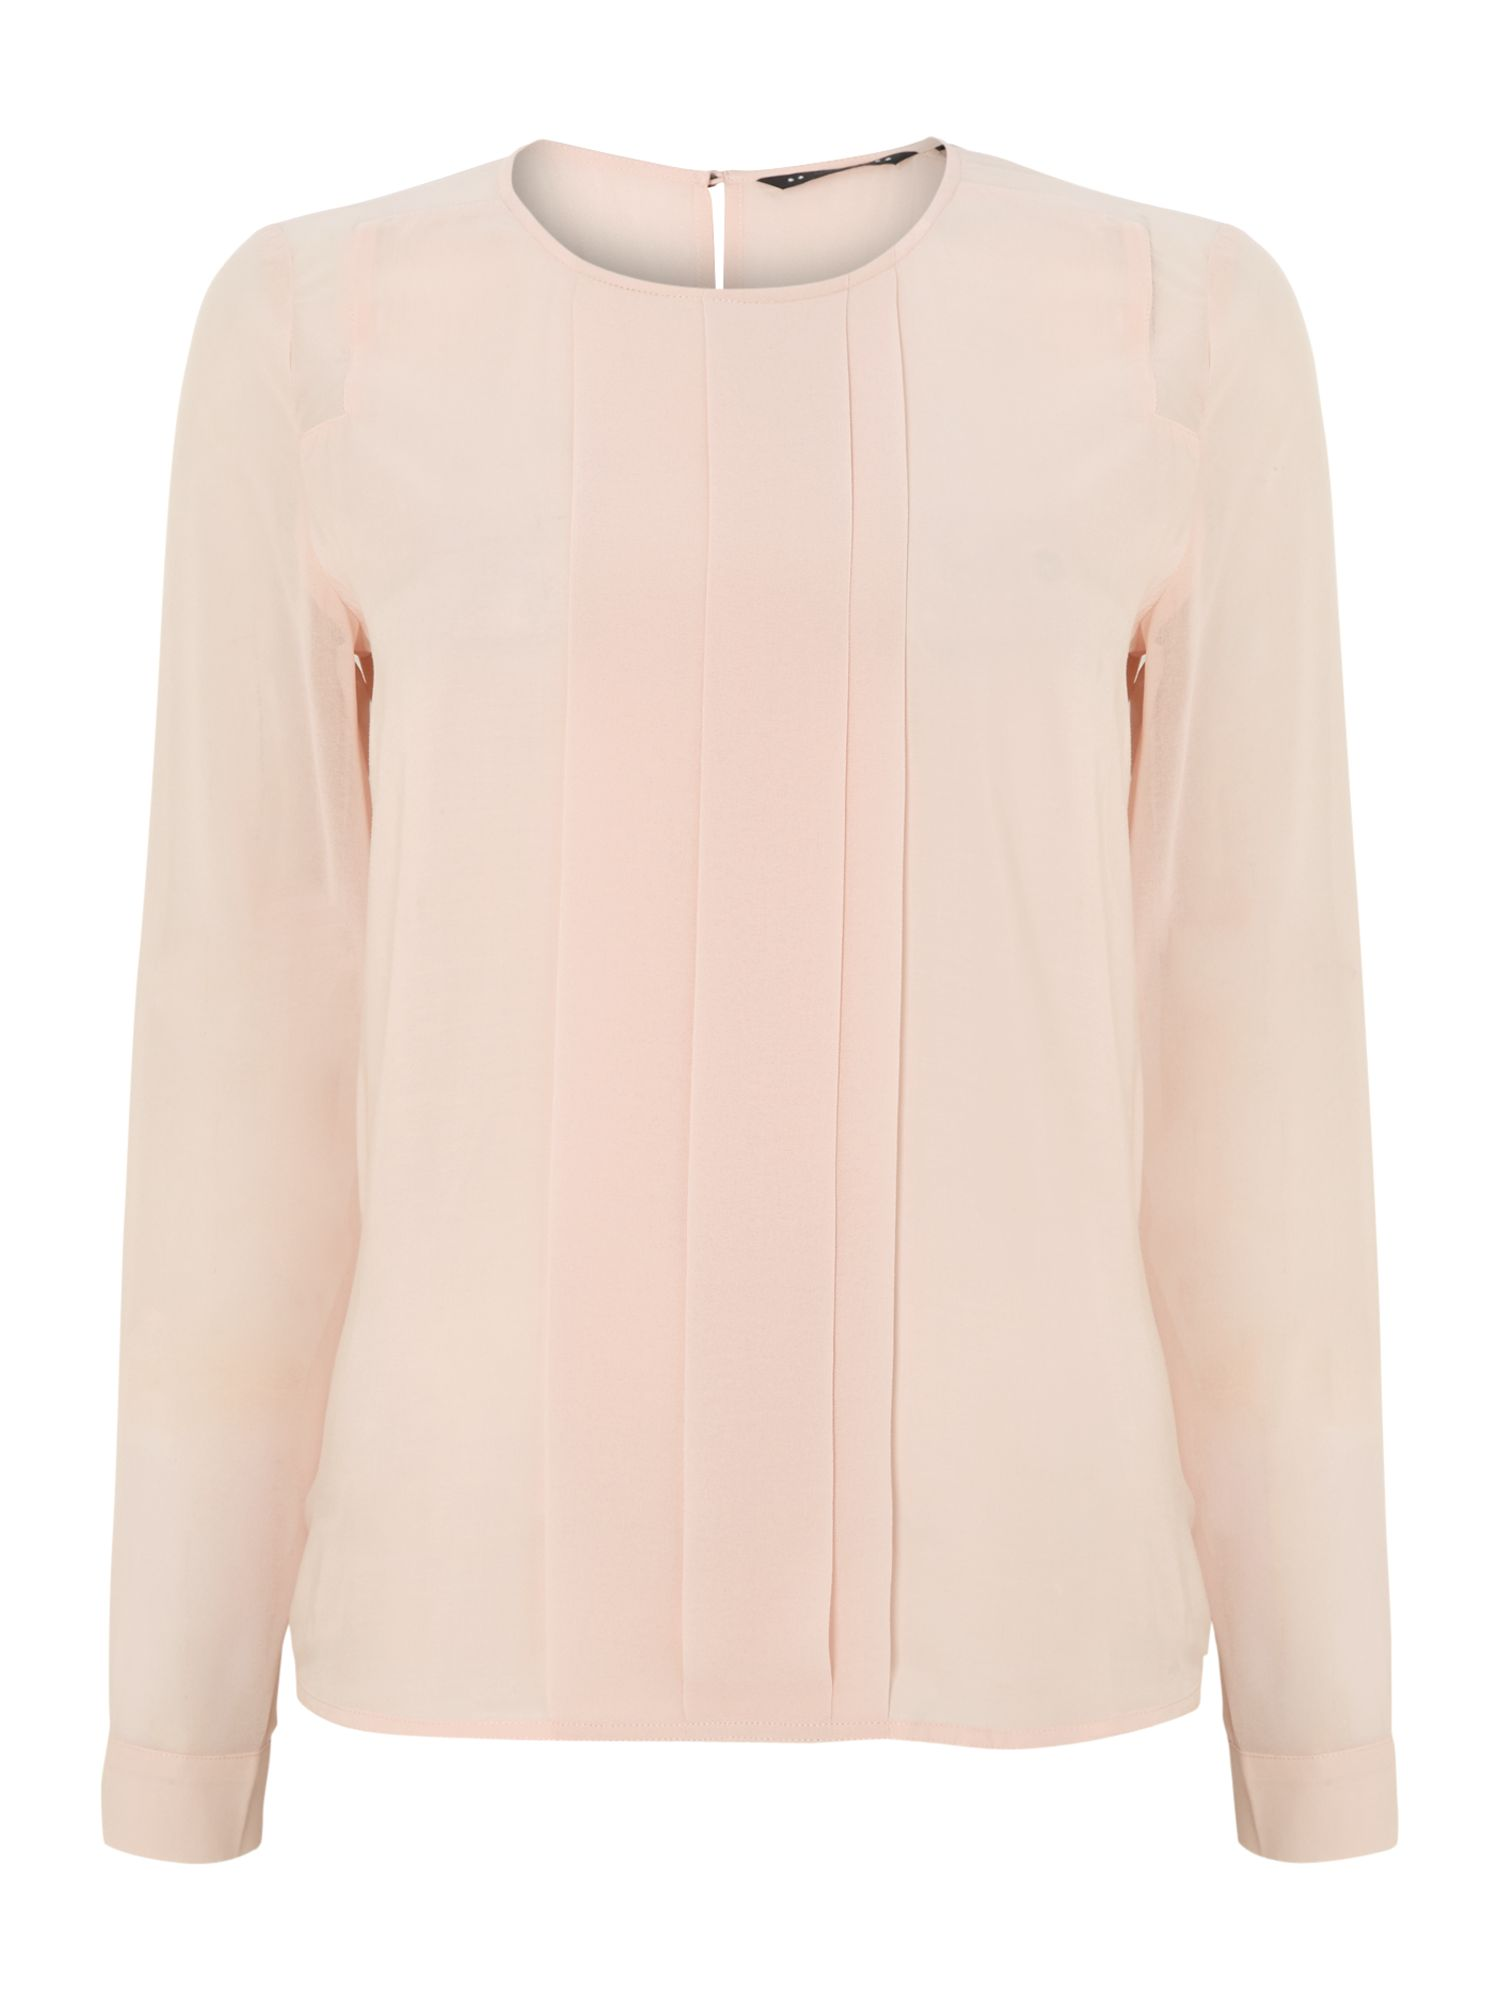 Long sleeve blouse with pleat panel in blush